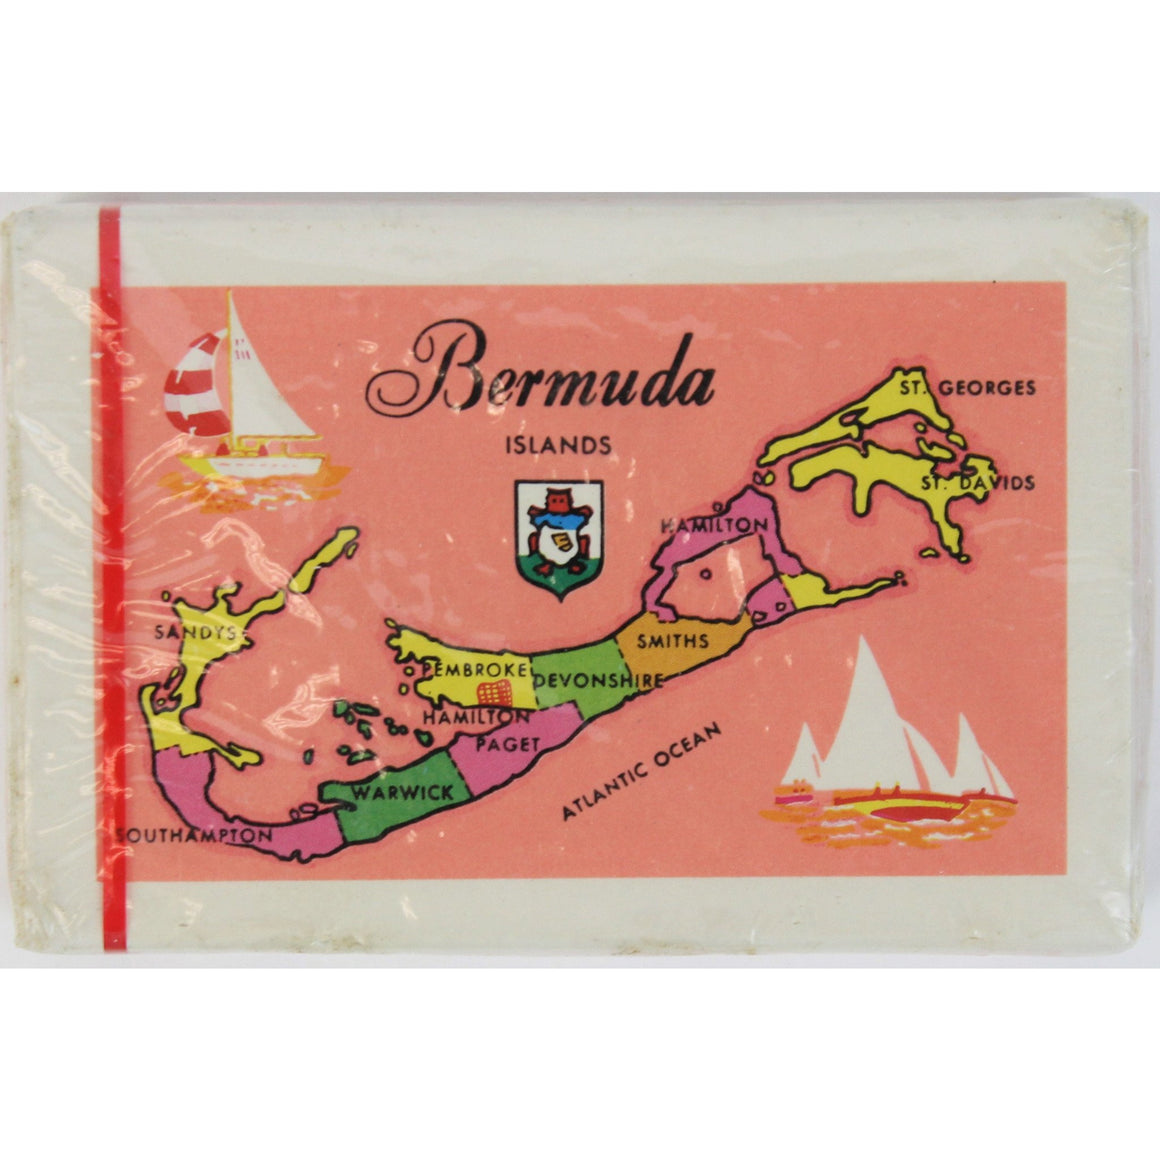 Bermuda Islands Deck of Playing Cards